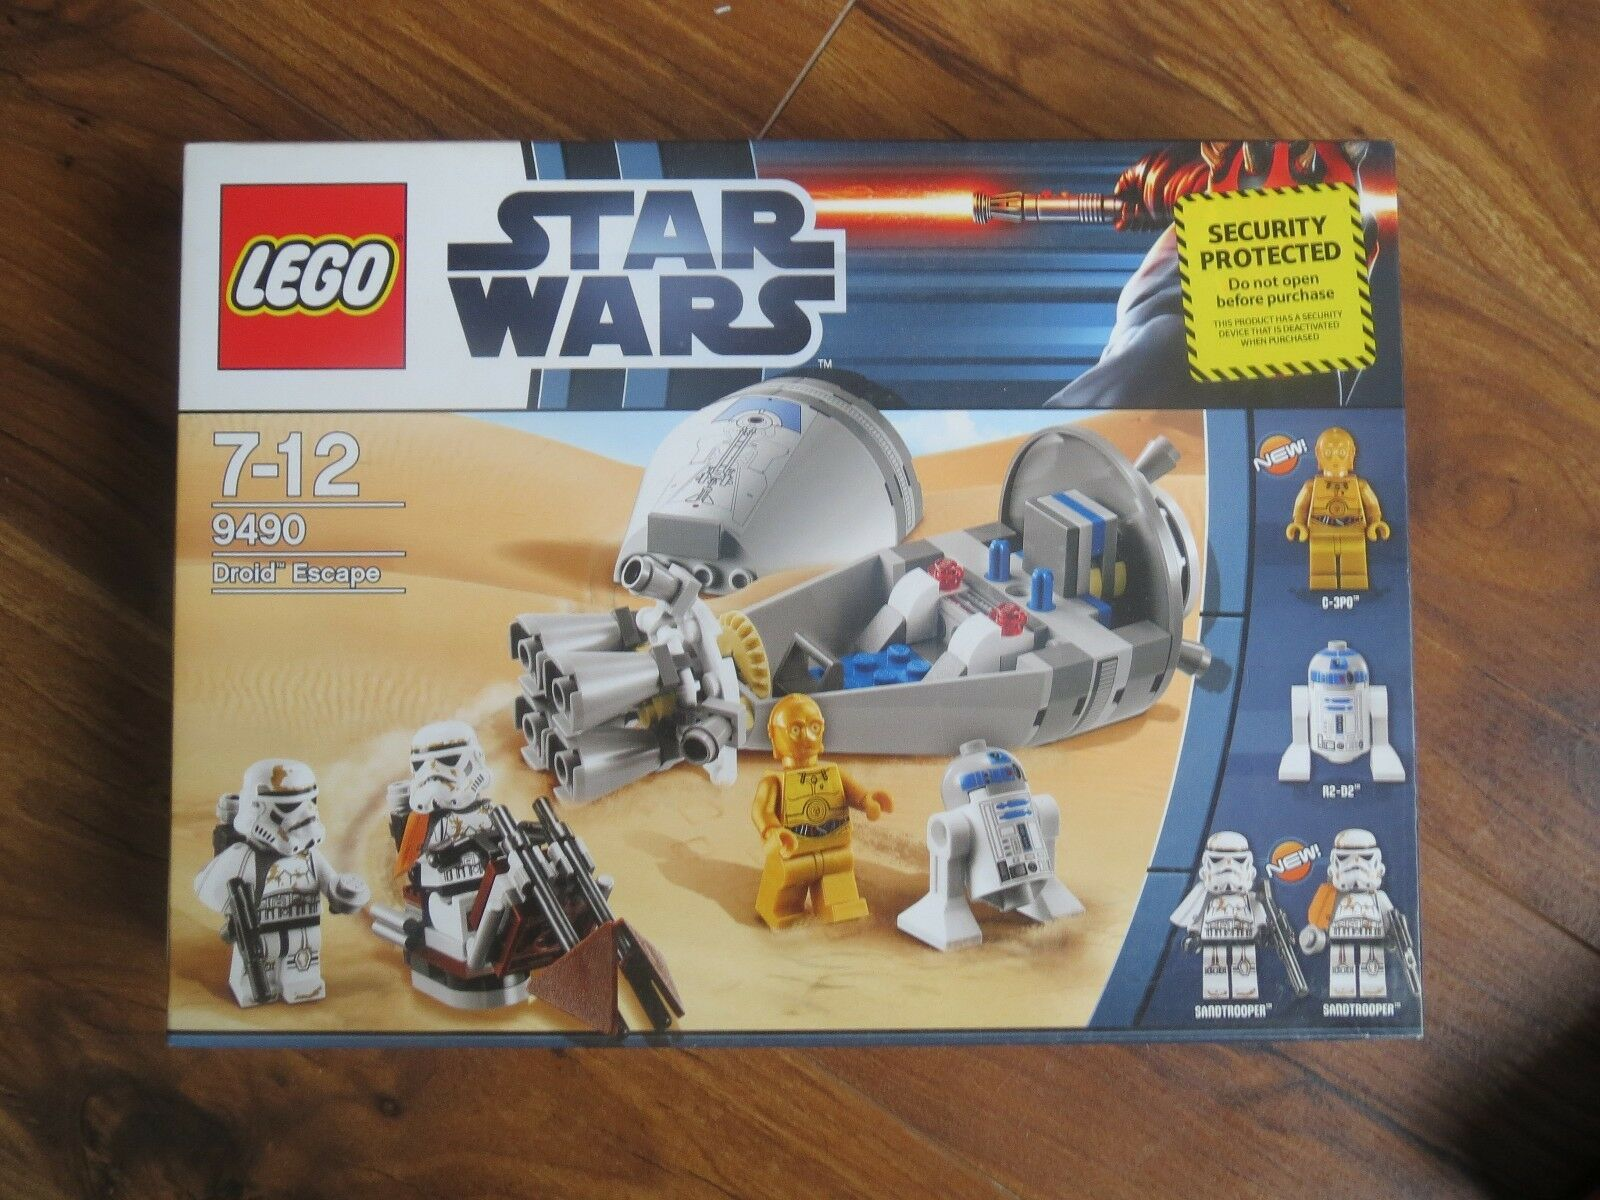 Lego Star Wars Droid Escape (7106)